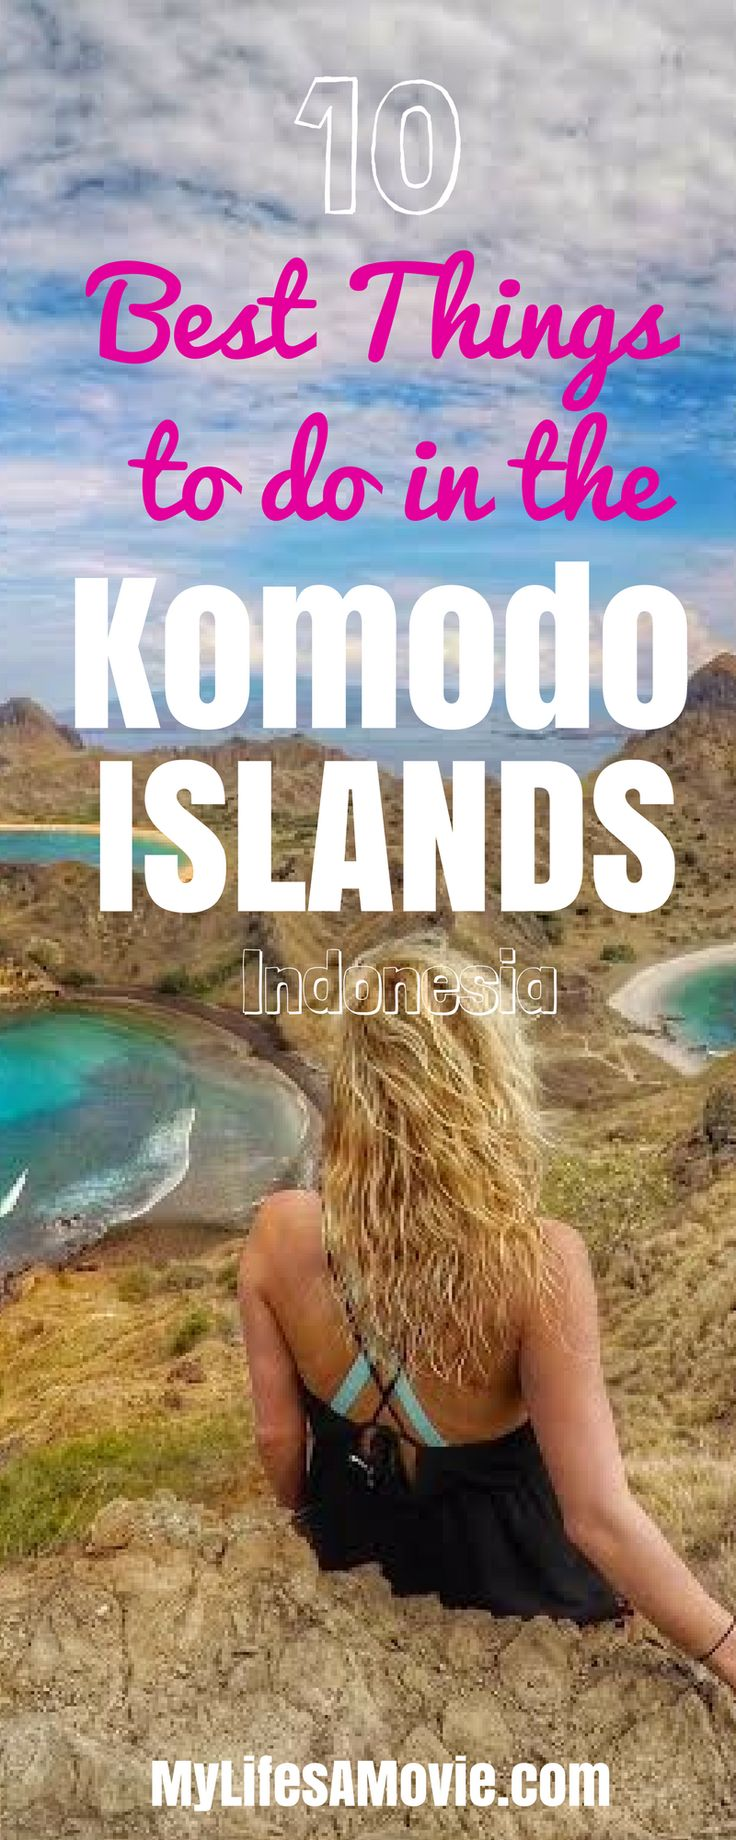 10 Best Things to do in the Komodo Islands, Indonesia! Don't just stay in Bali, there are lots of awesome things to do in Indonesia that are just a short flight or boat ride away! - MyLifesAMovie.com